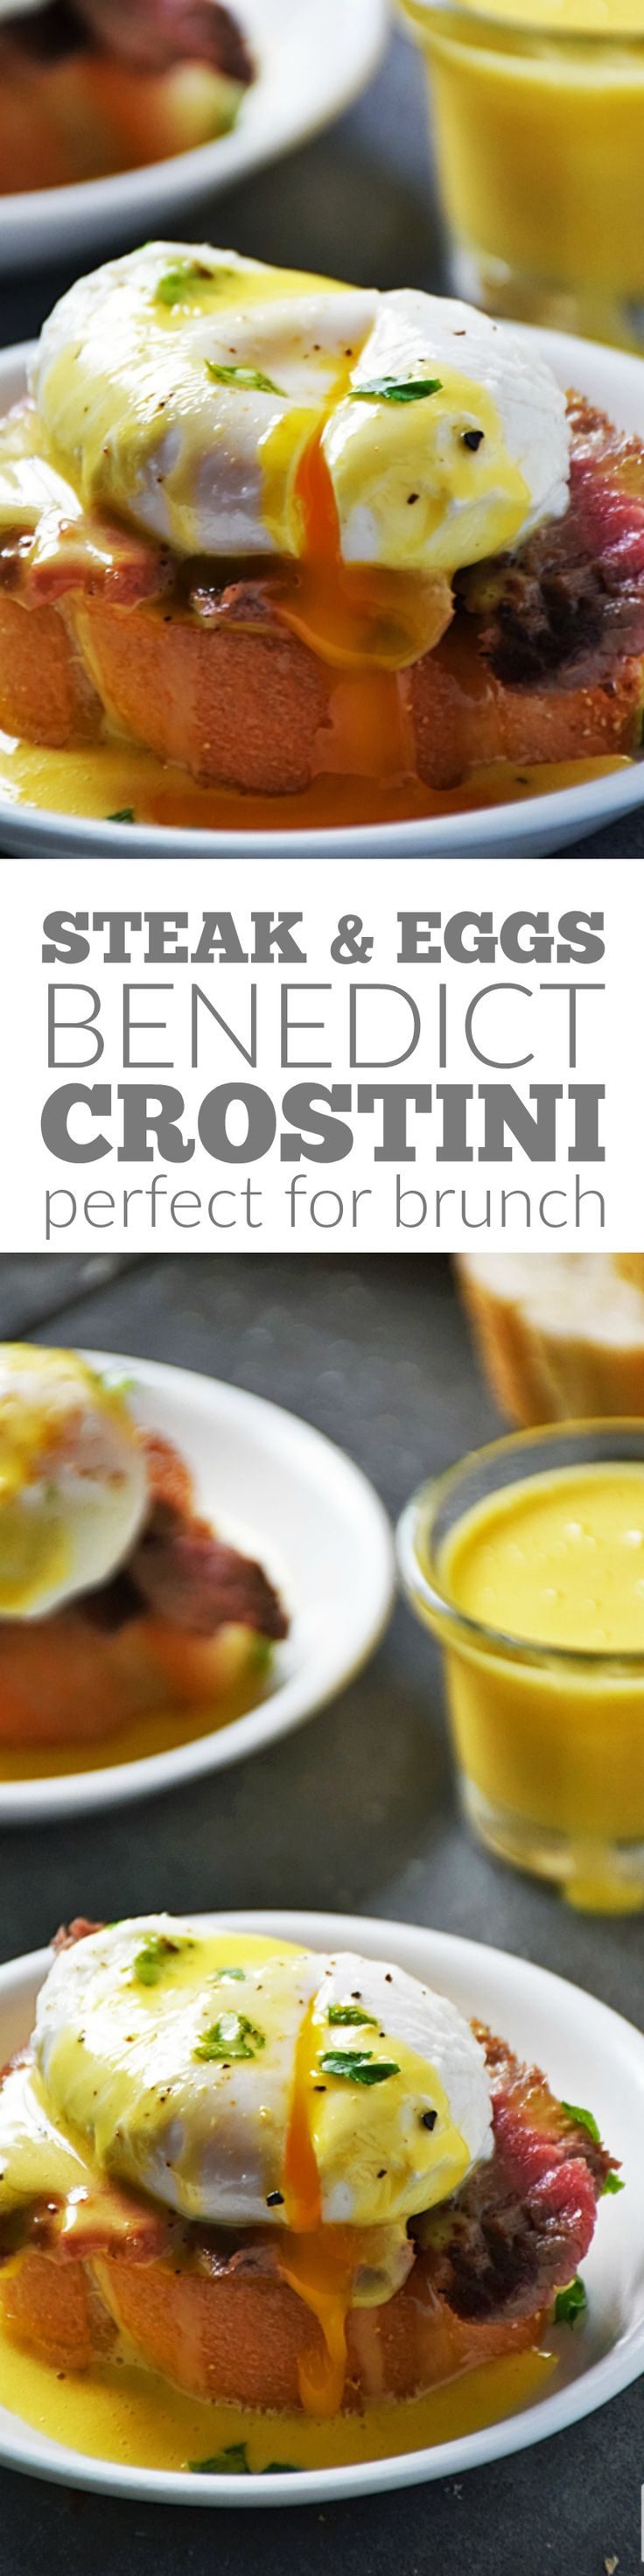 Steak and Eggs Benedict Crostini is perfect for brunch, a starter before dinner, or even for a party appetizer! This recipe is always a winner anytime of day for any occasion. #LTGrecipes